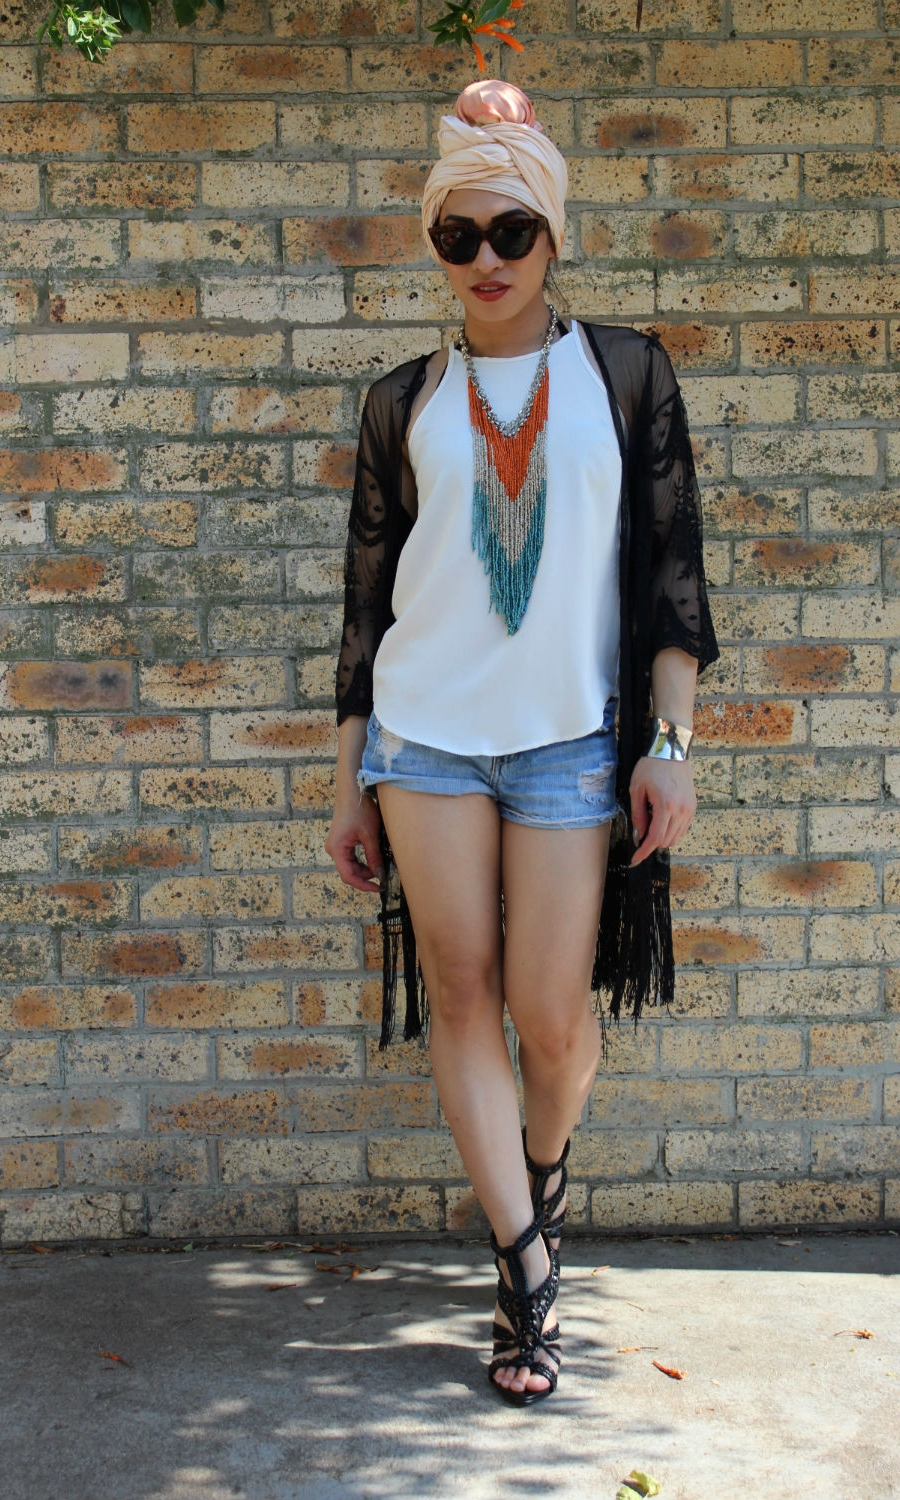 Brand ambassador BIANKA I has teamed tiedye headwrap  PEACHY PEACH  with shorts for a more casual appeal.